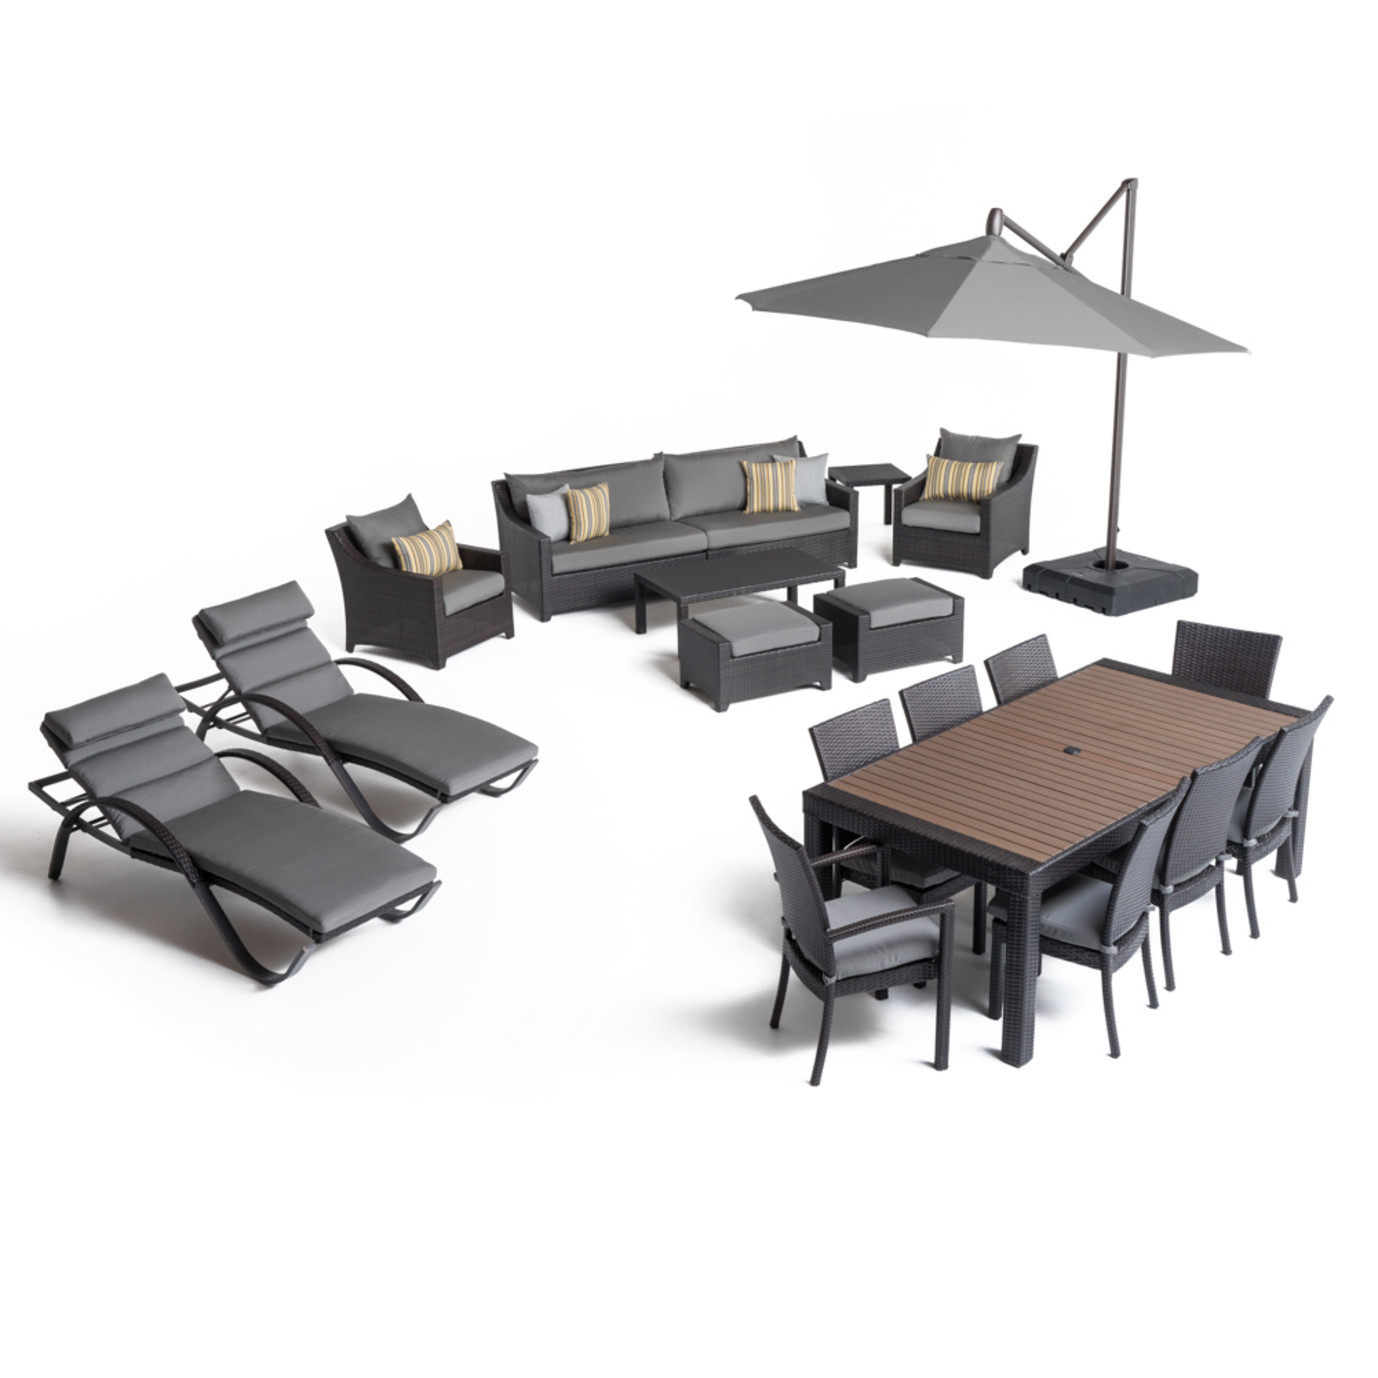 Deco™ 20 Piece Outdoor Estate Set - Charcoal Gray